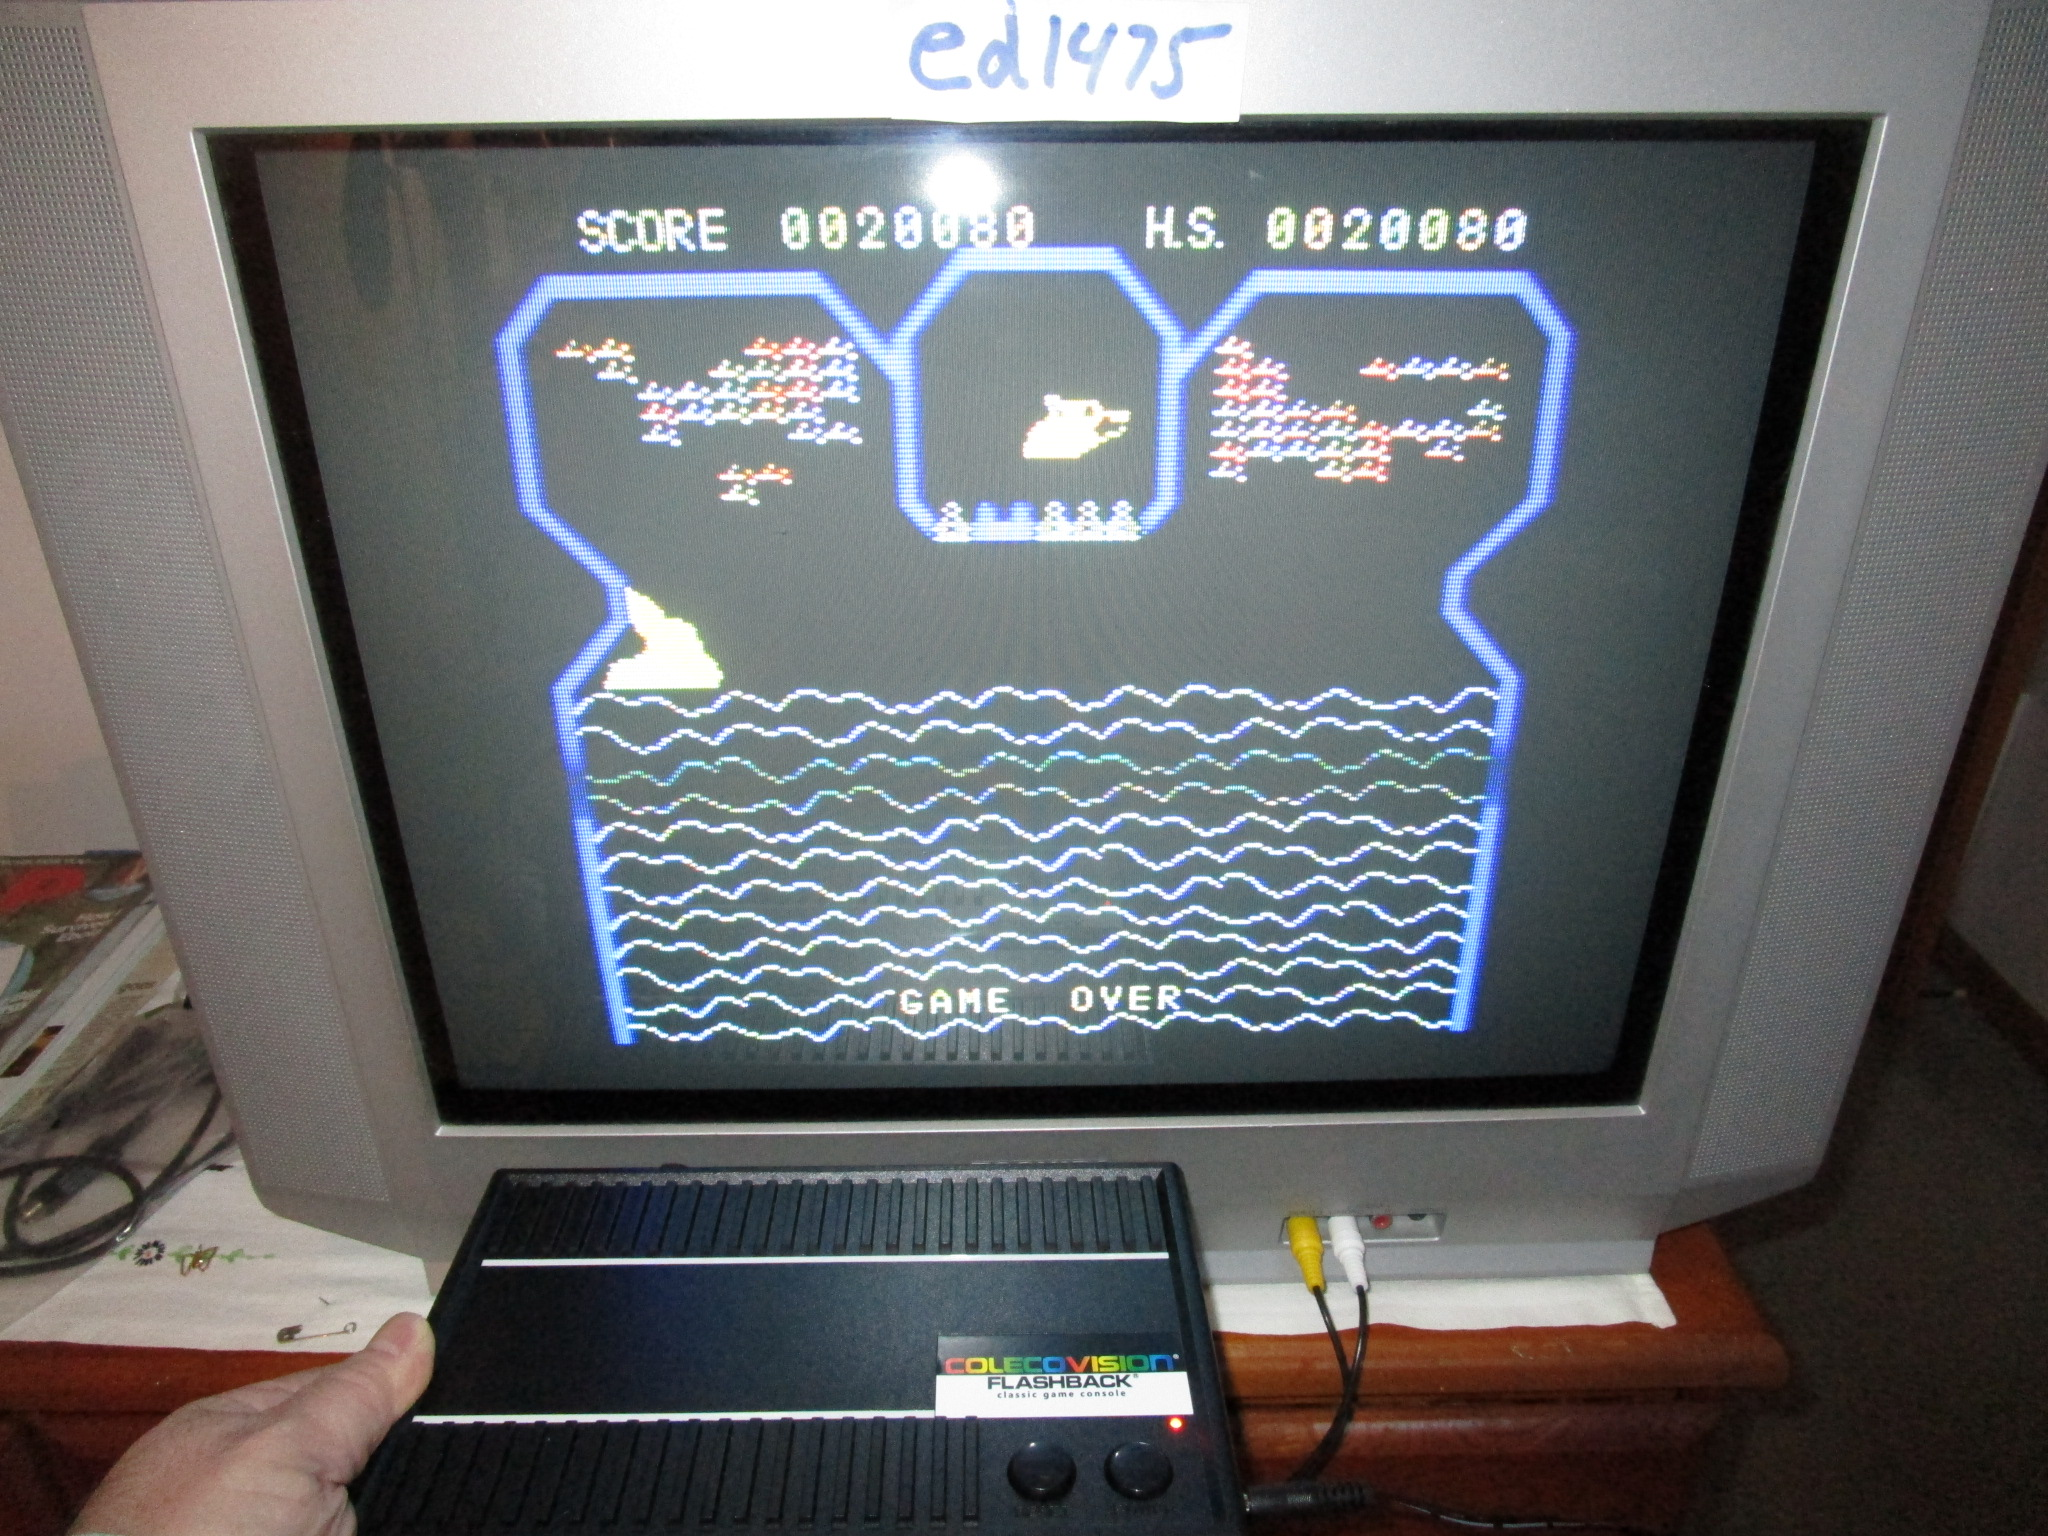 ed1475: Flipper Slipper (Colecovision Flashback) 20,080 points on 2015-01-26 19:43:58